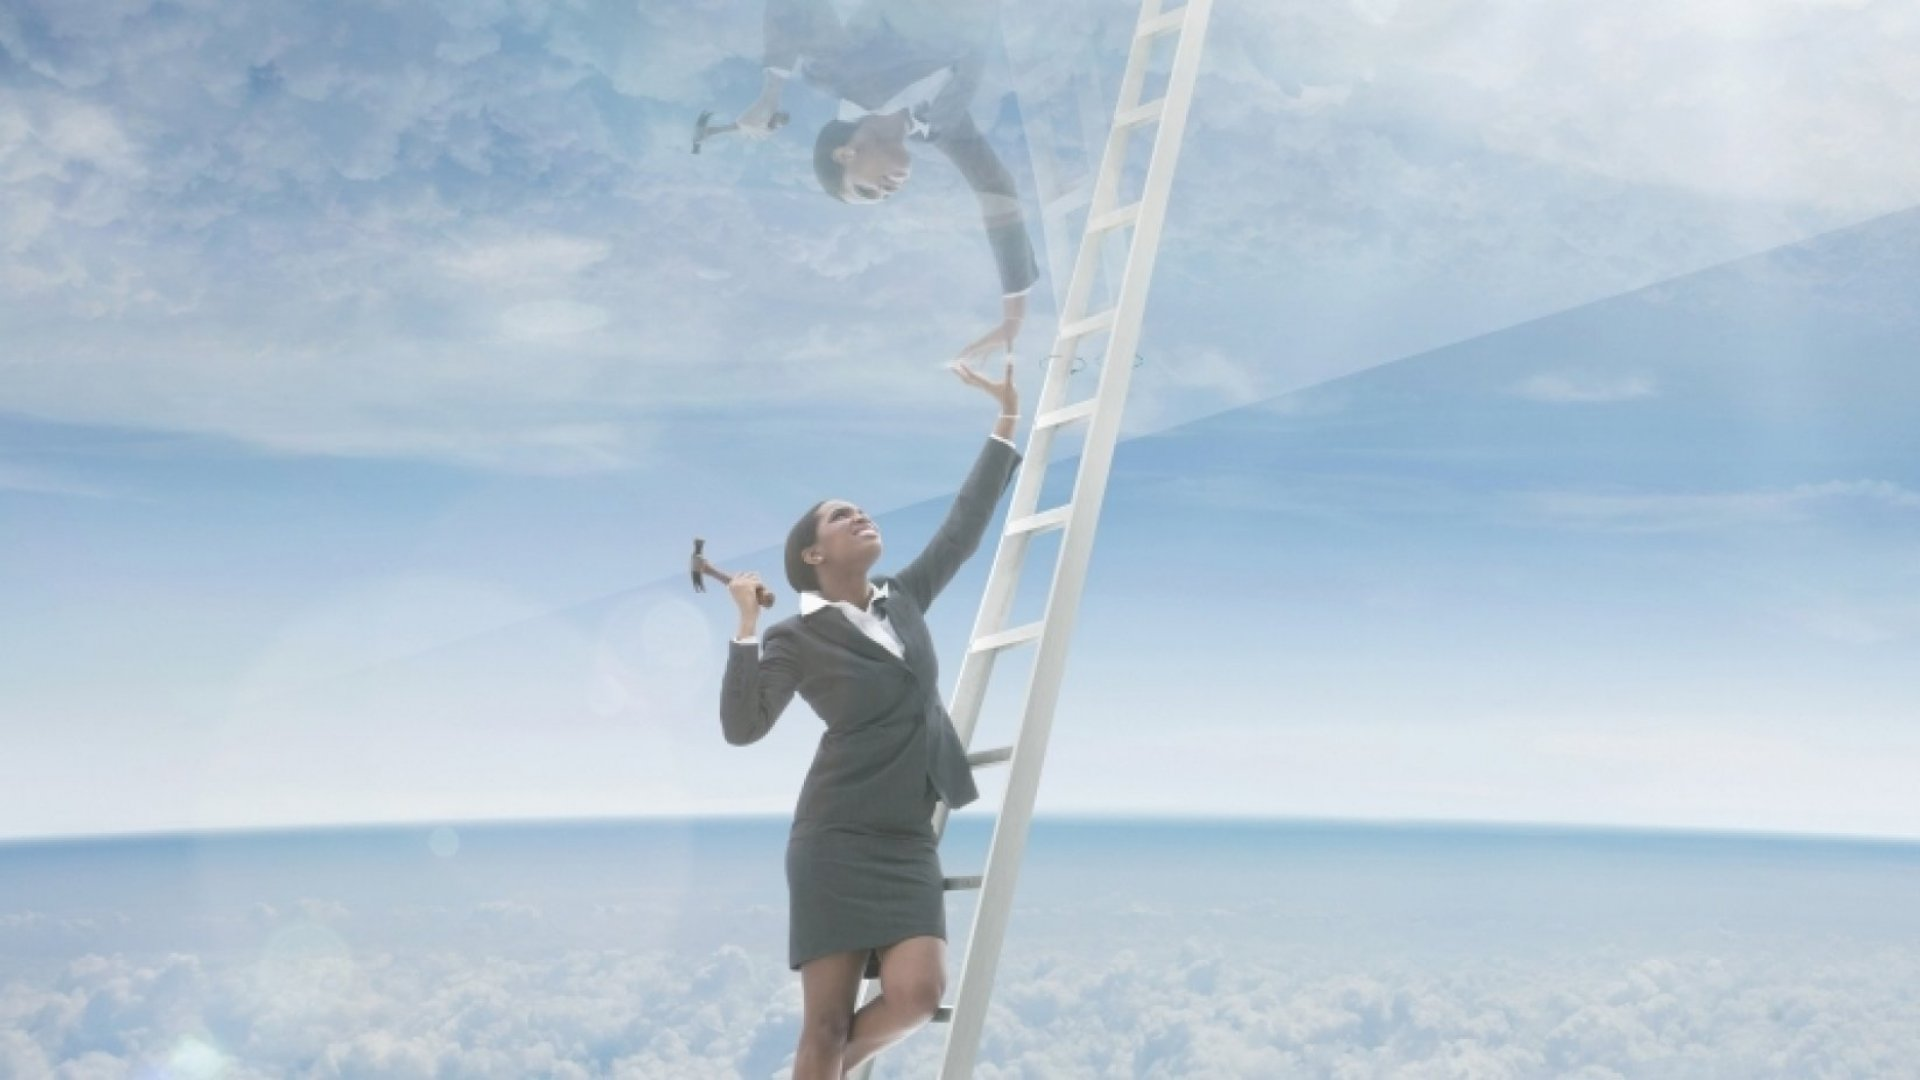 10 Immediate Actions You Can Take to Help Shatter the Glass Ceiling